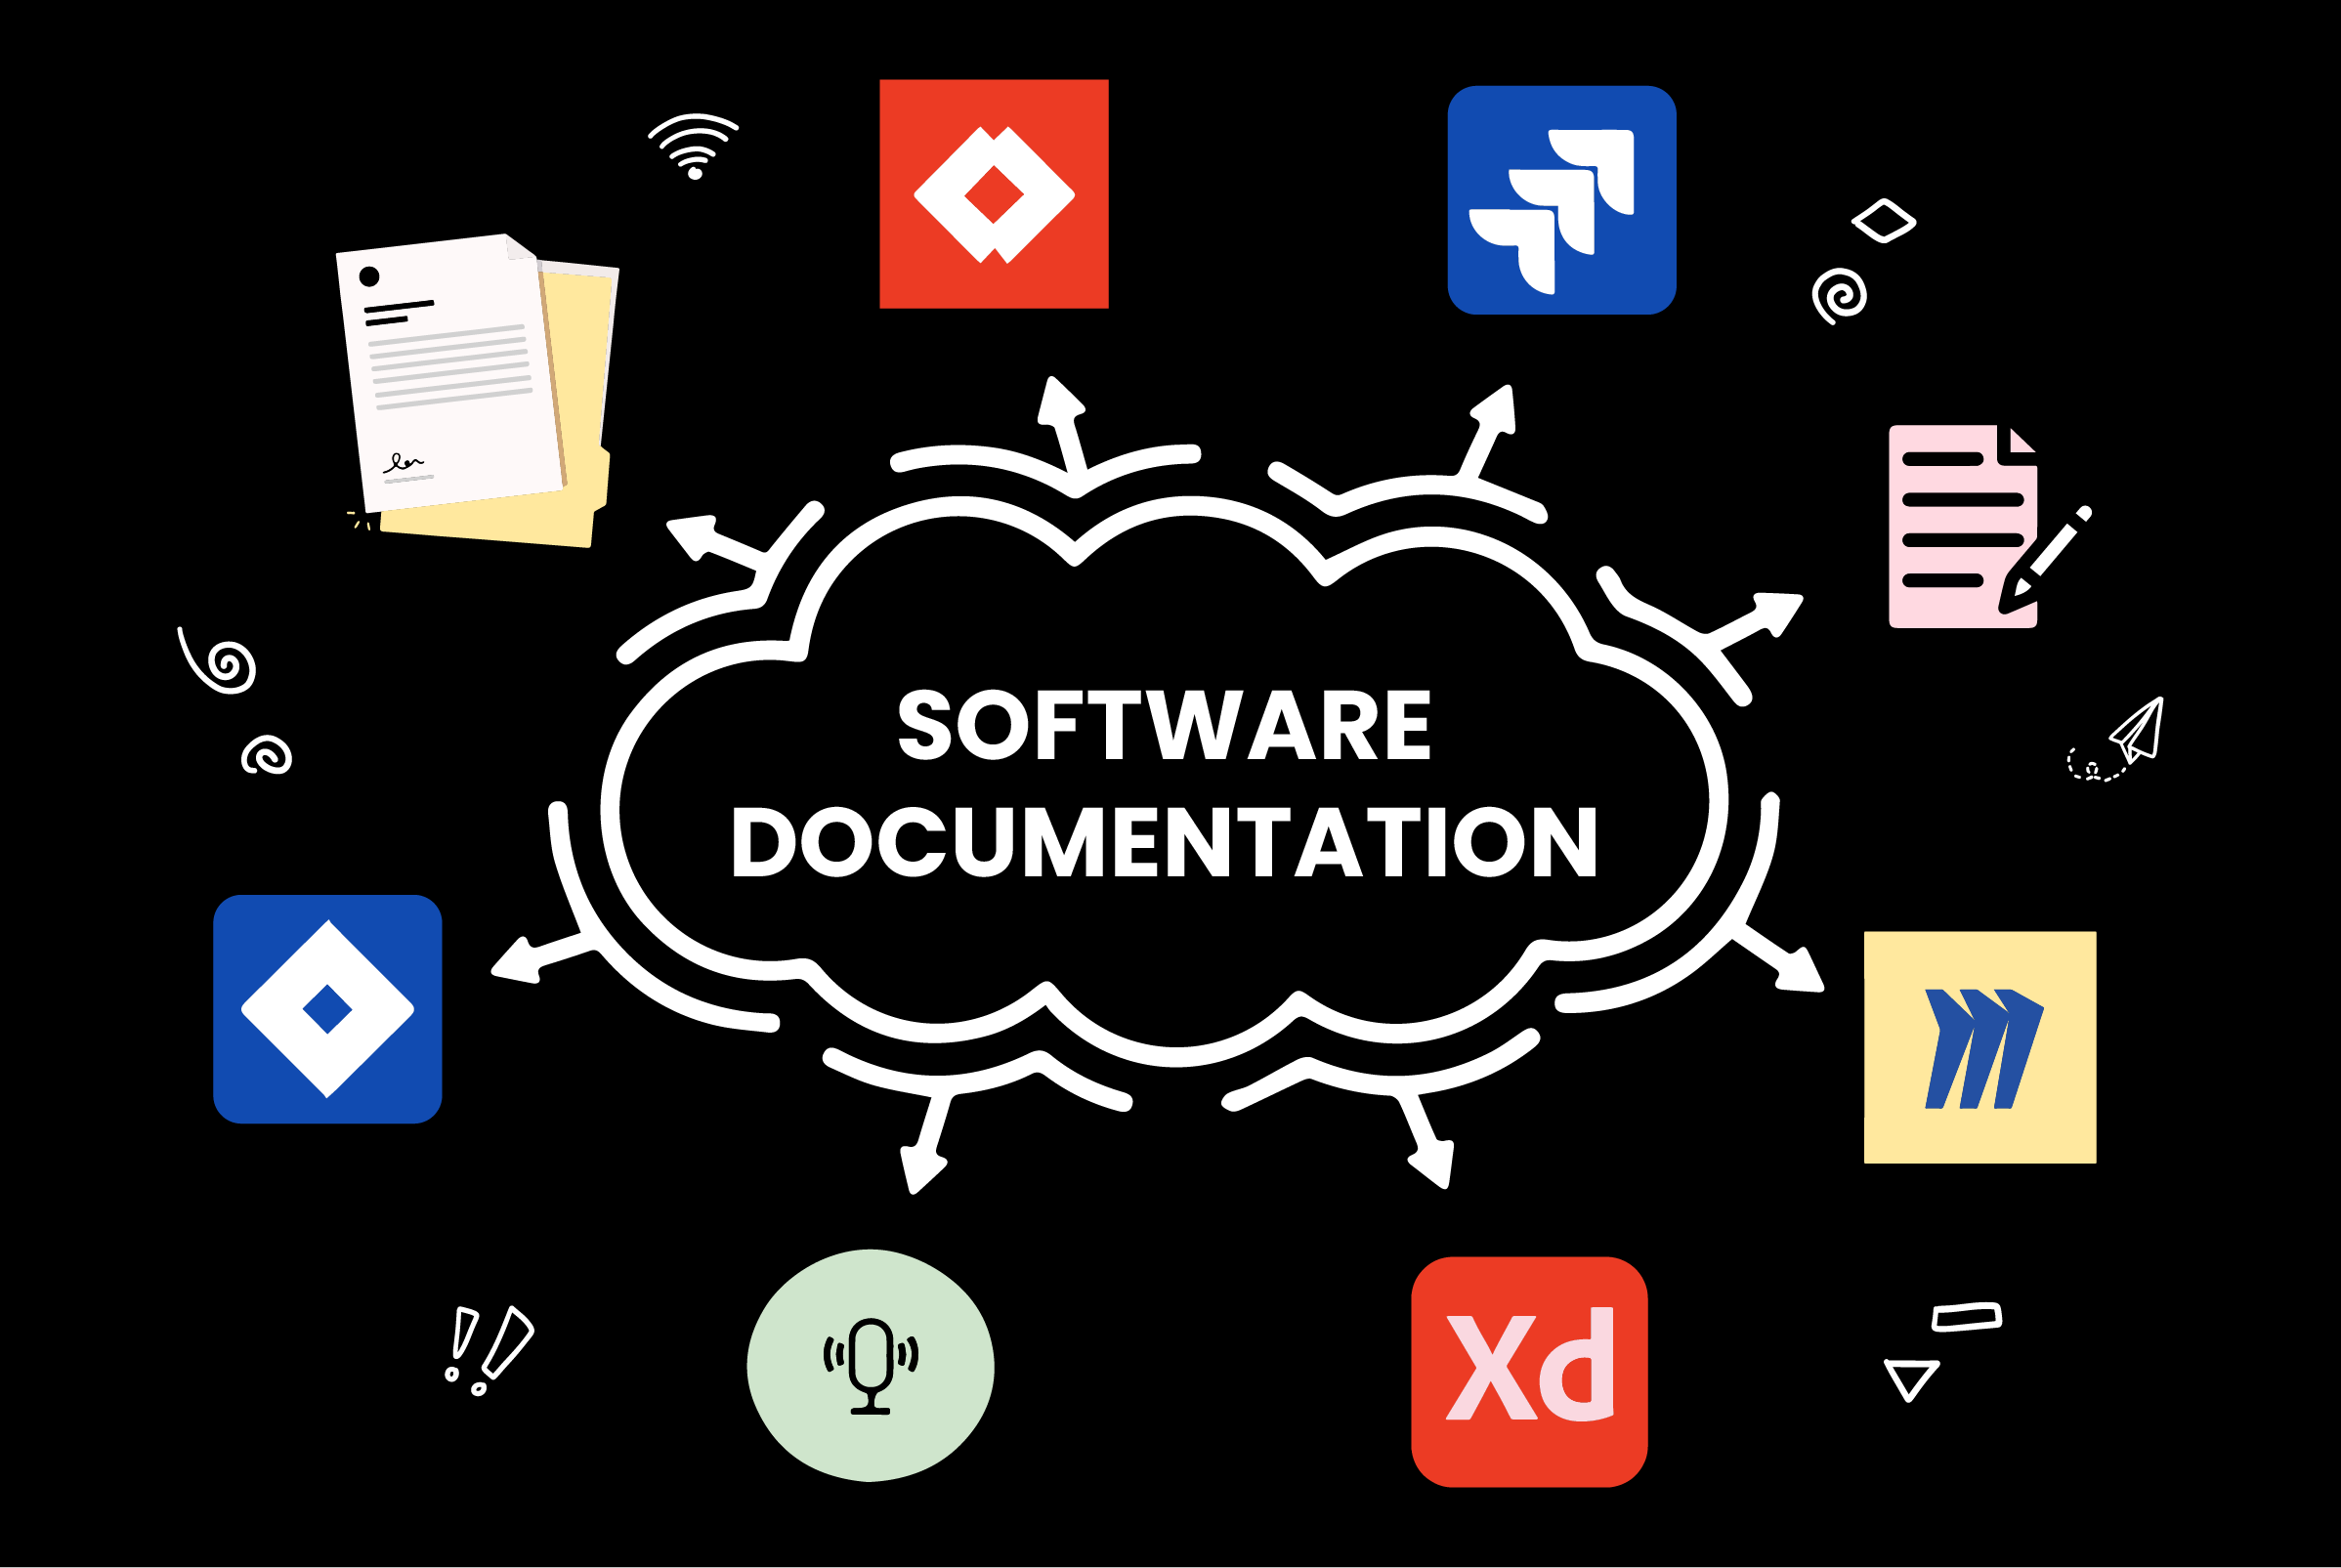 A word cloud with 'Software Documentation' in the middle. Around the outside are icons for Adobe XD, jira, confluence, note taking, recordings and more.